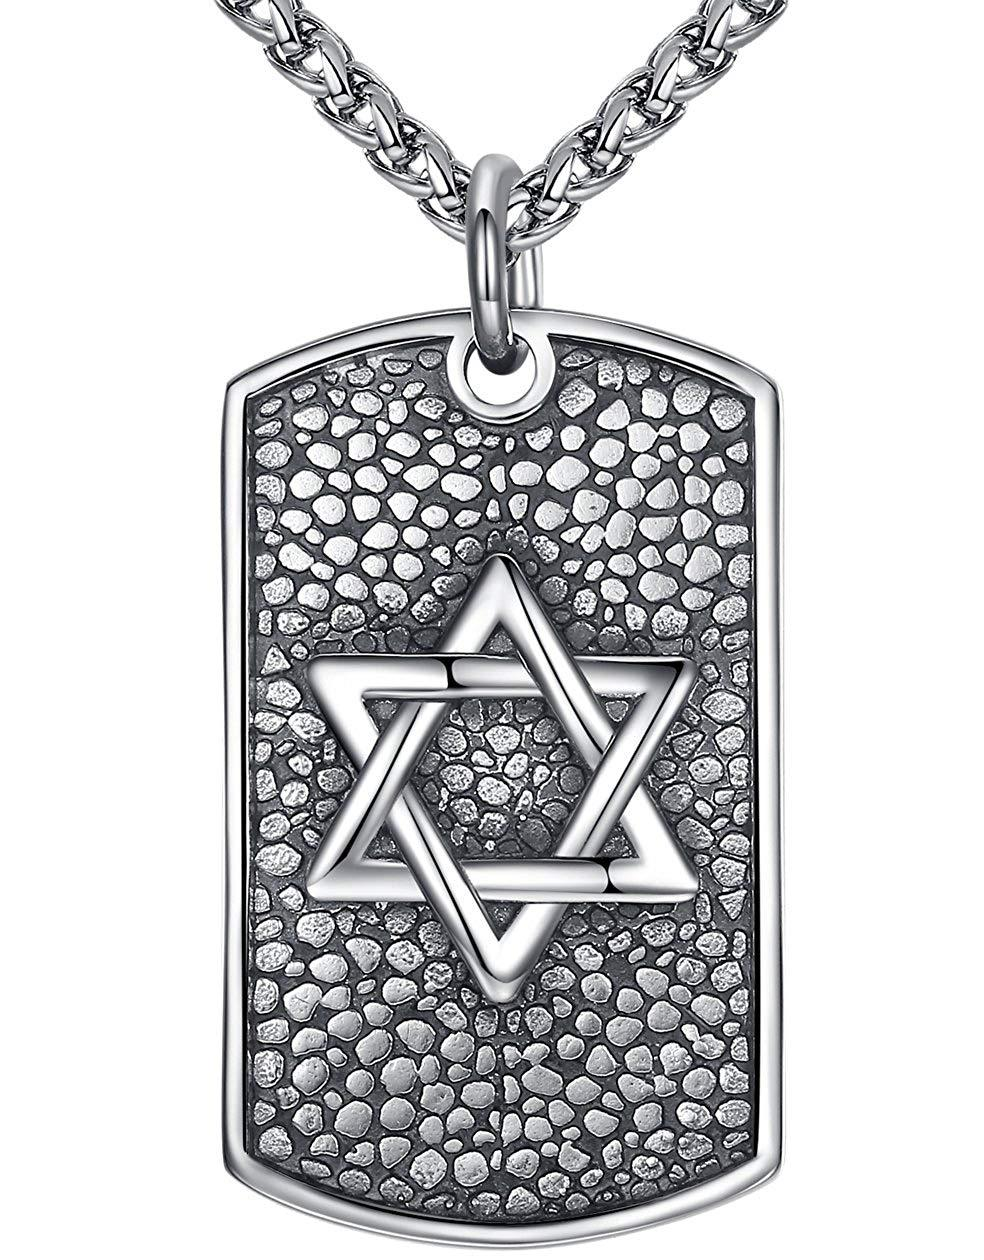 "Aoiy Men's Stainless Steel Star of David Dog Tag Biker Extra Large Heavy Pendant Necklace, 24"" Link Chain, hhp011"